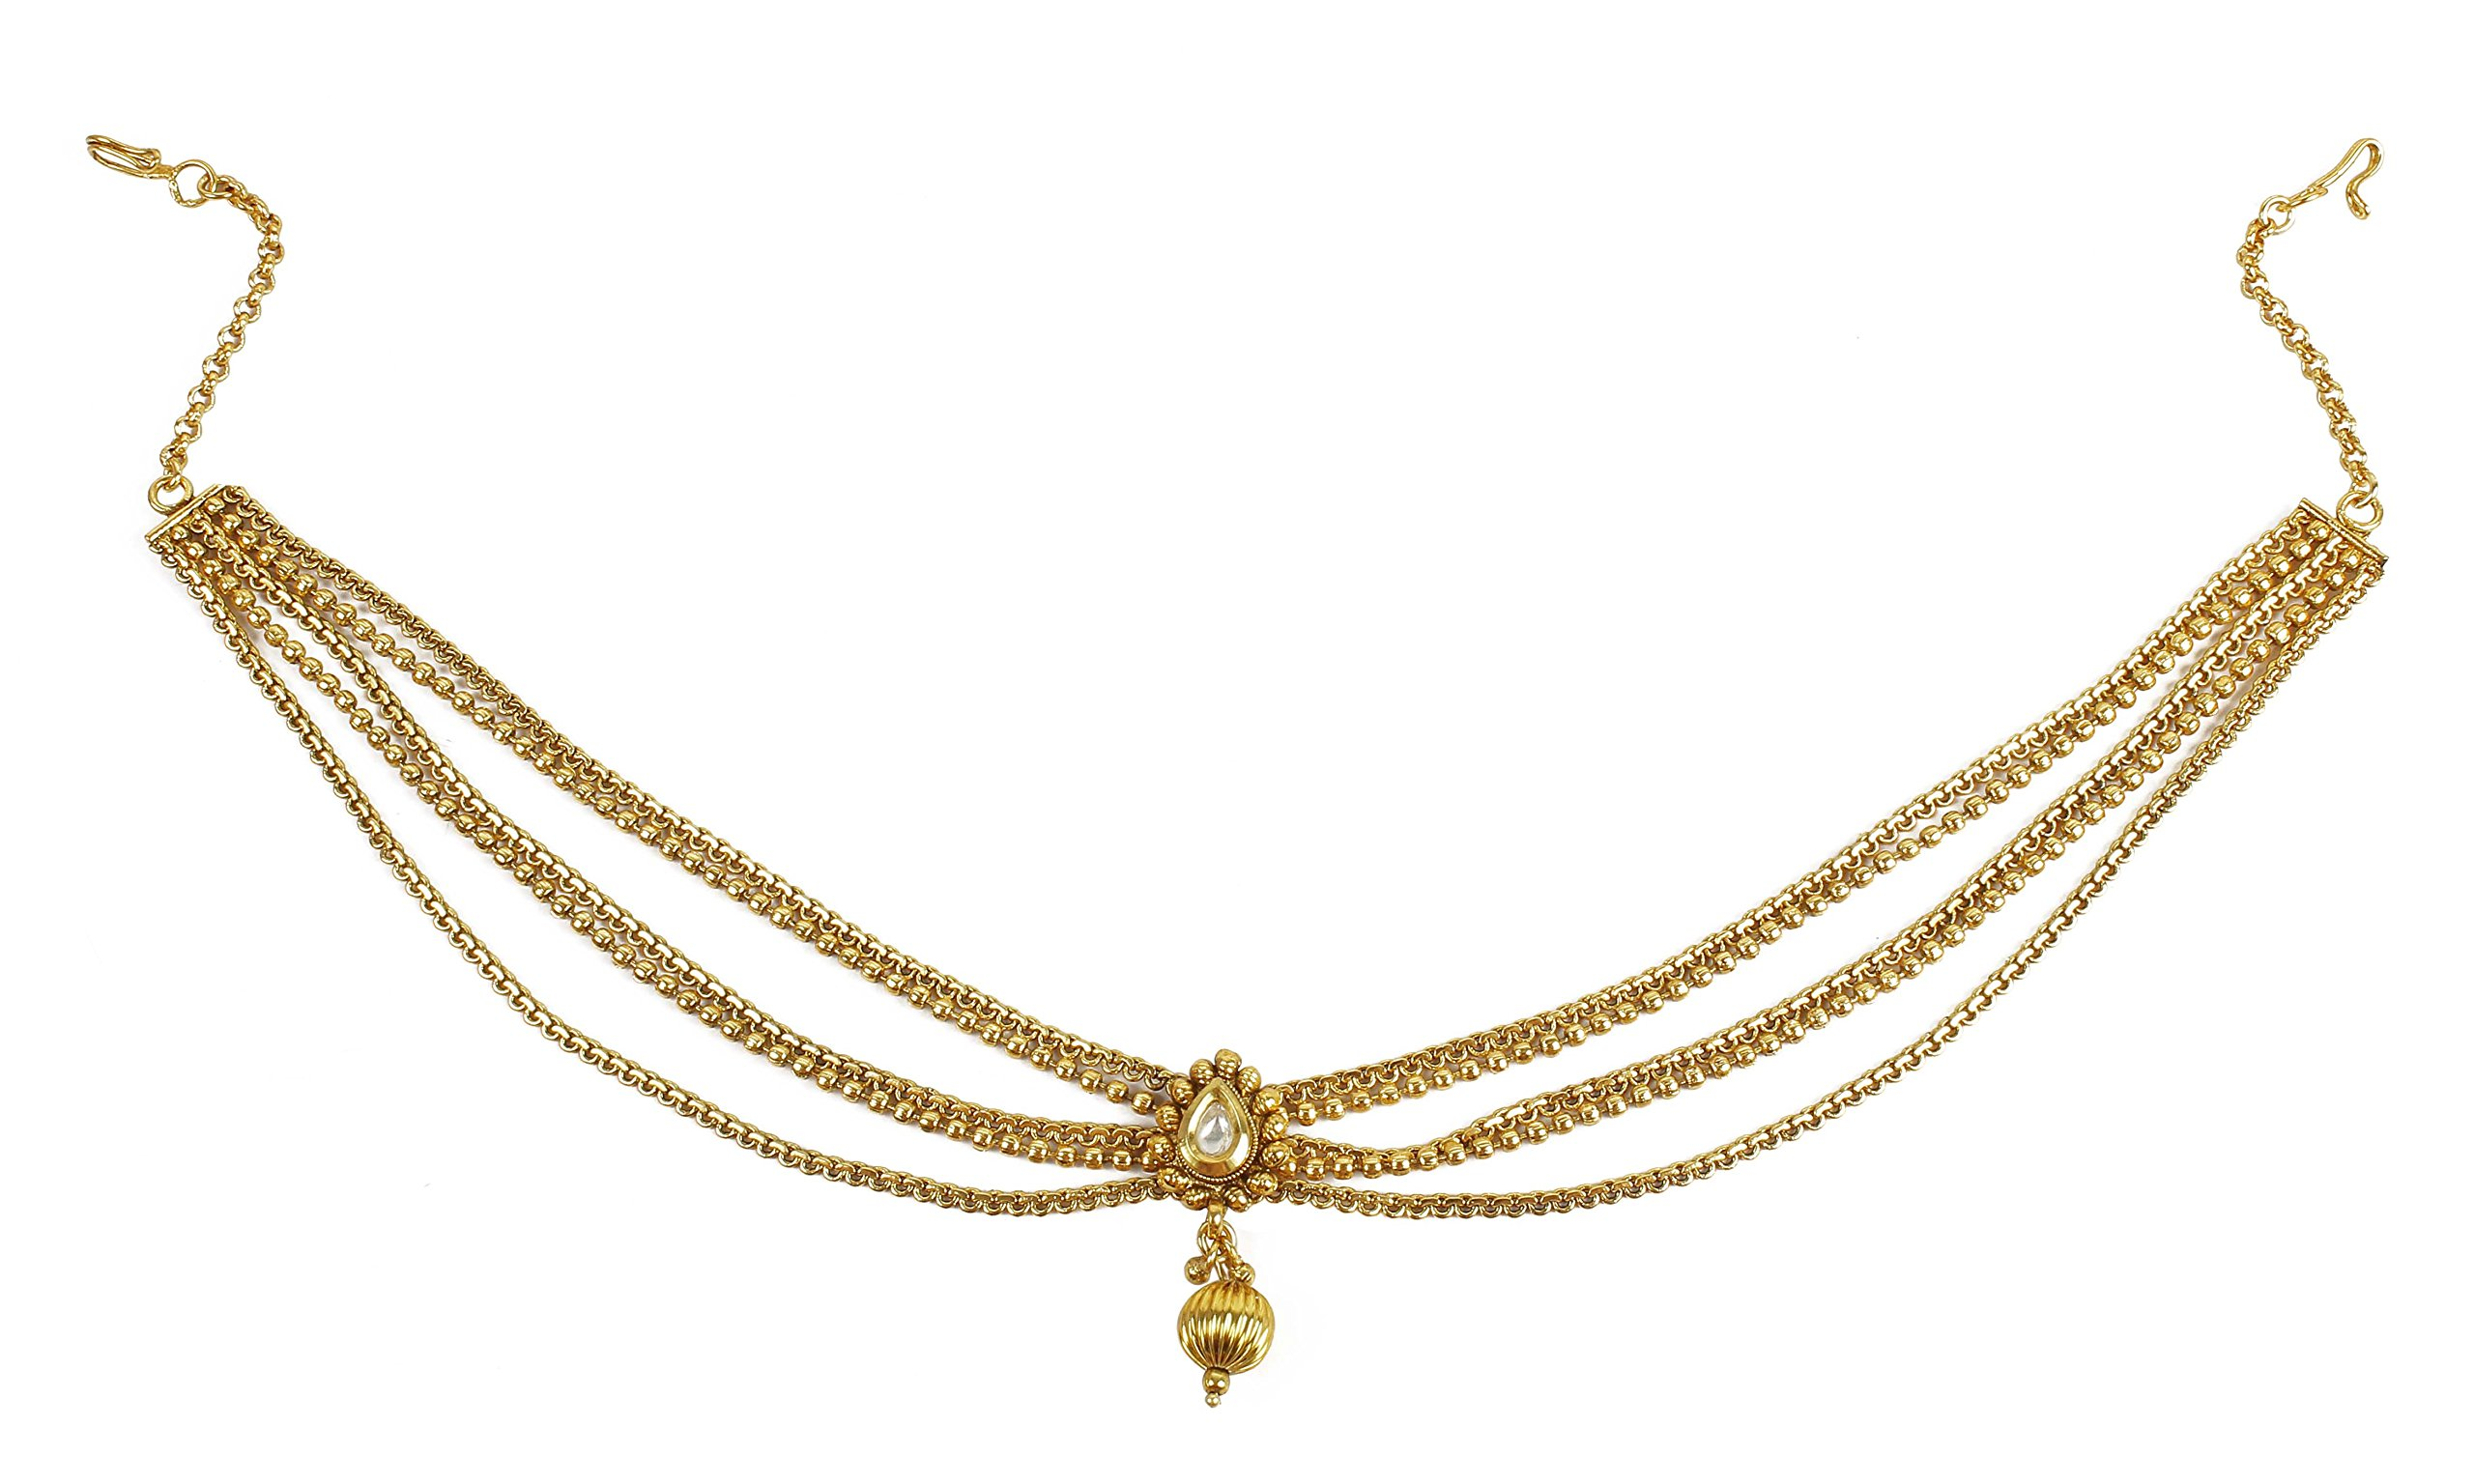 MUCH-MORE Awesome Style Stunning Gold Plated Indian Matha Patti Head Partywear Jewelry For Women (44)